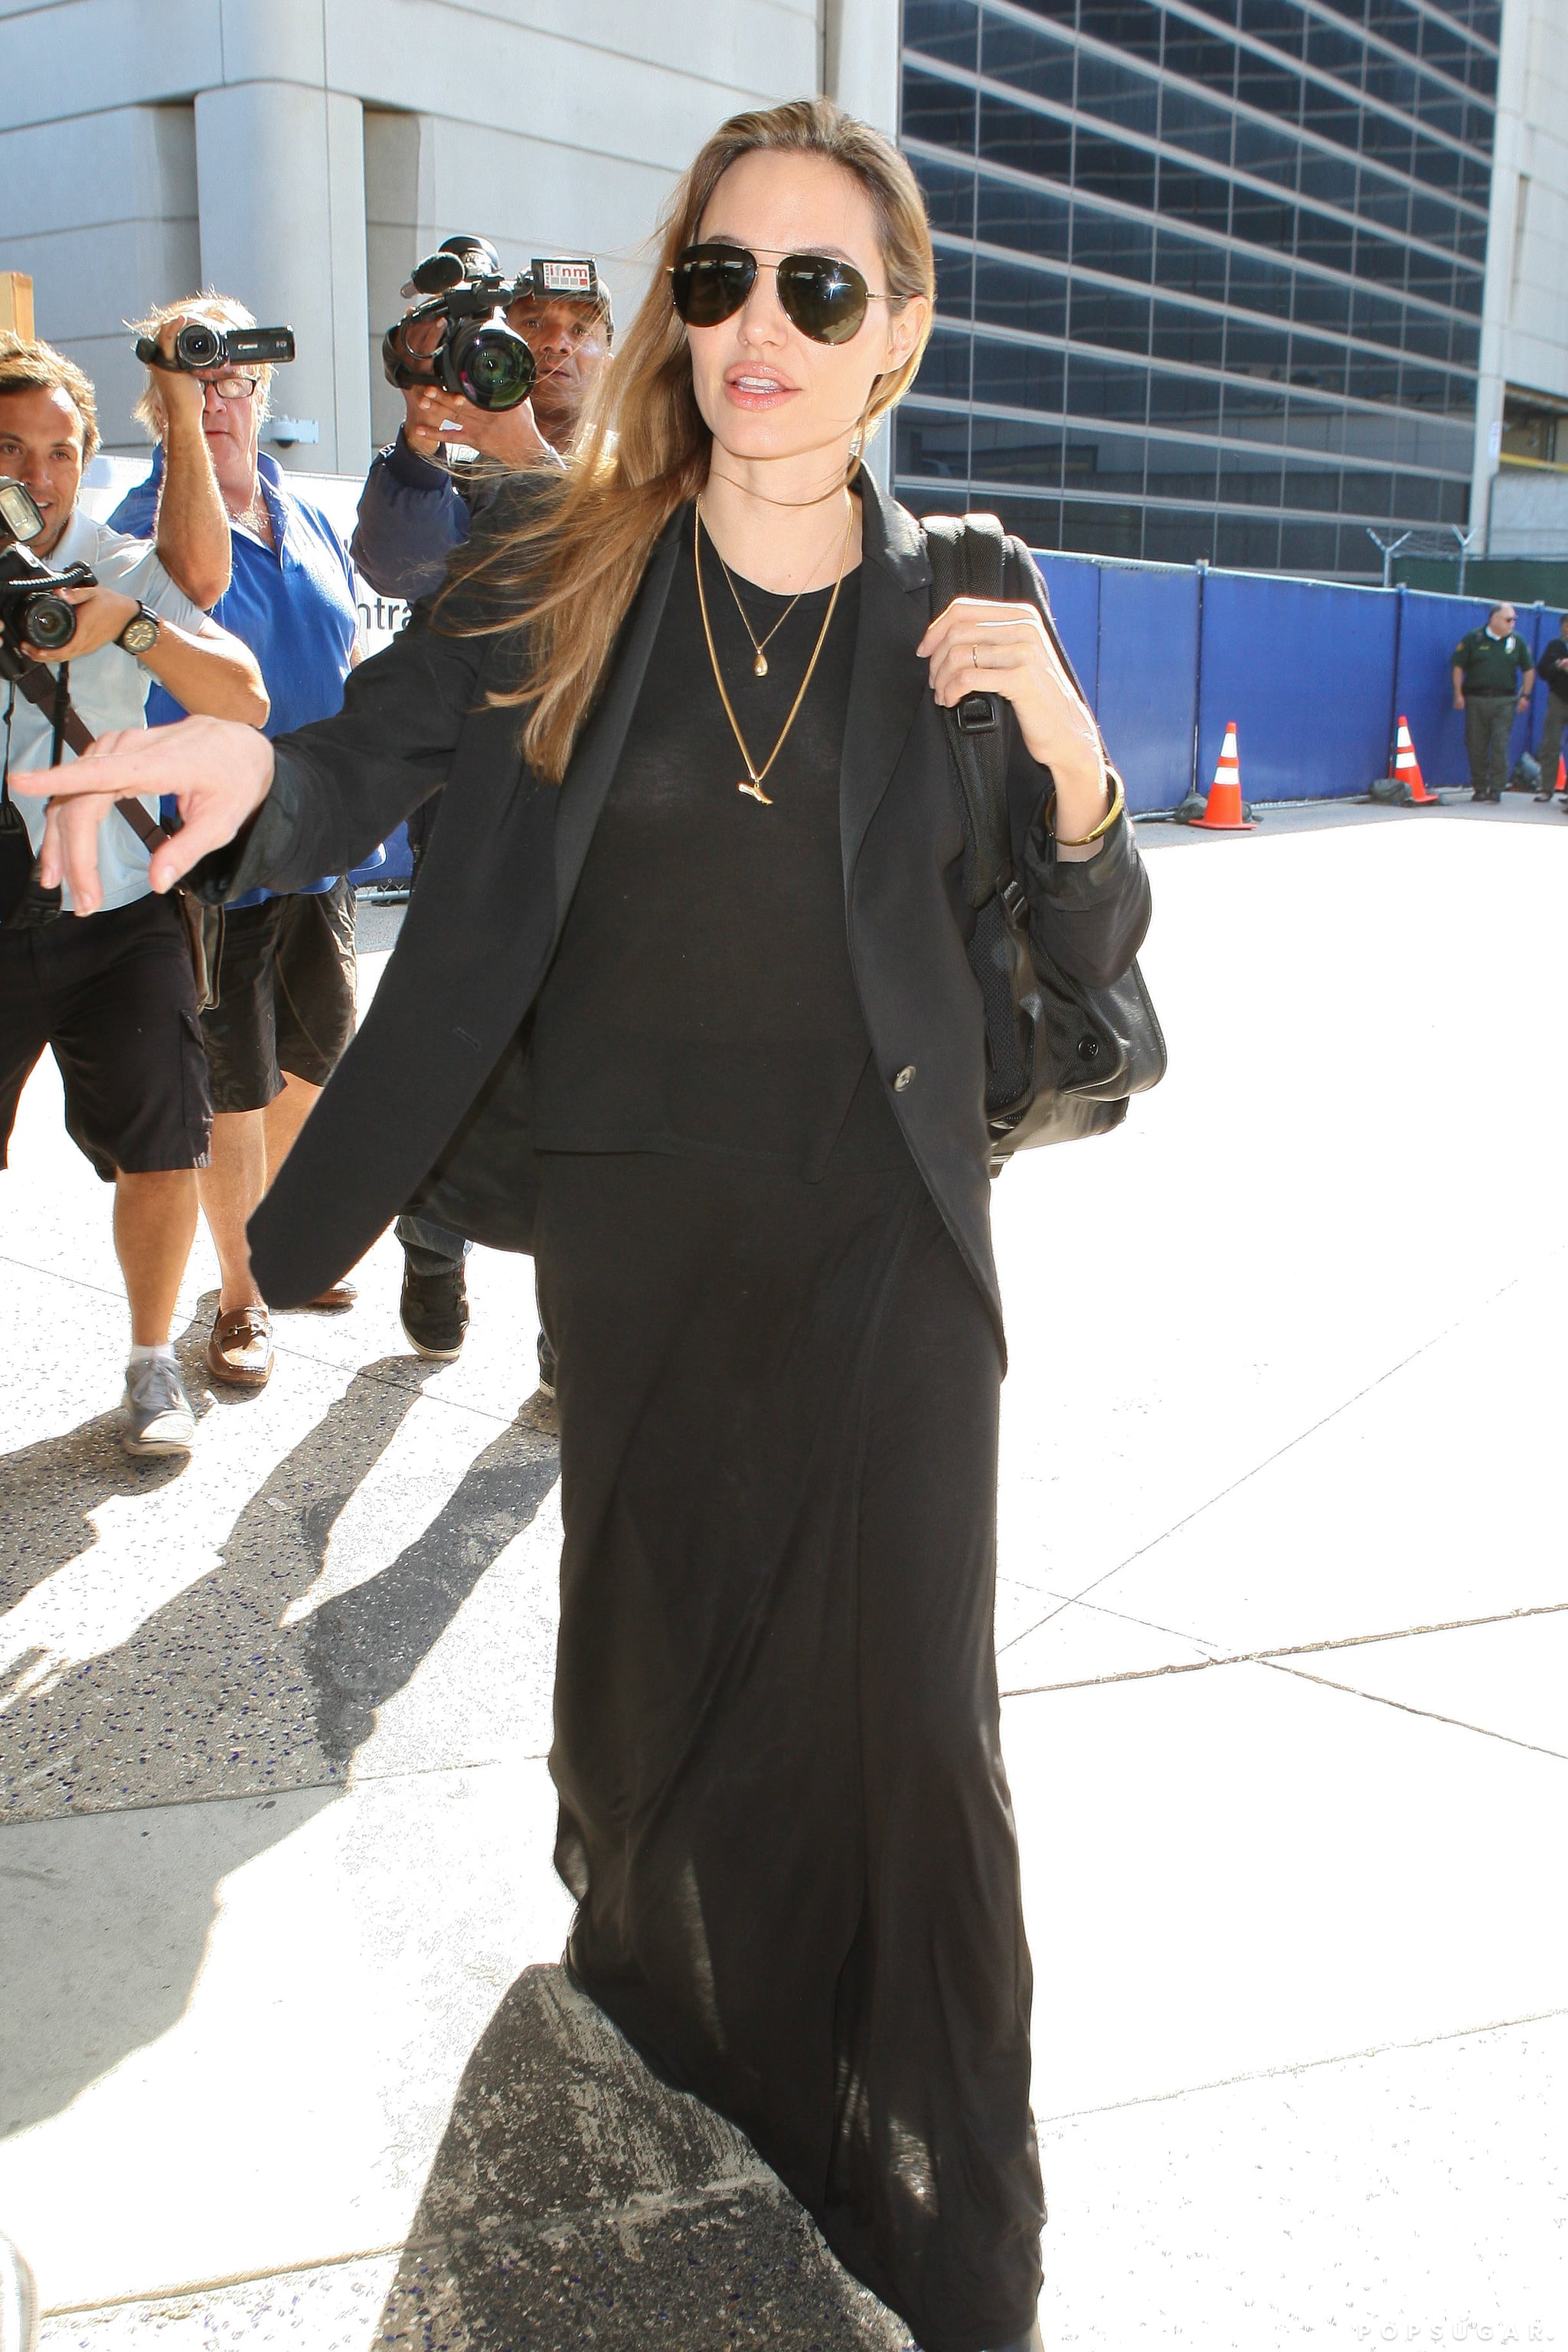 Angelina Jolie made her way through the crowd at LAX on Wednesday.